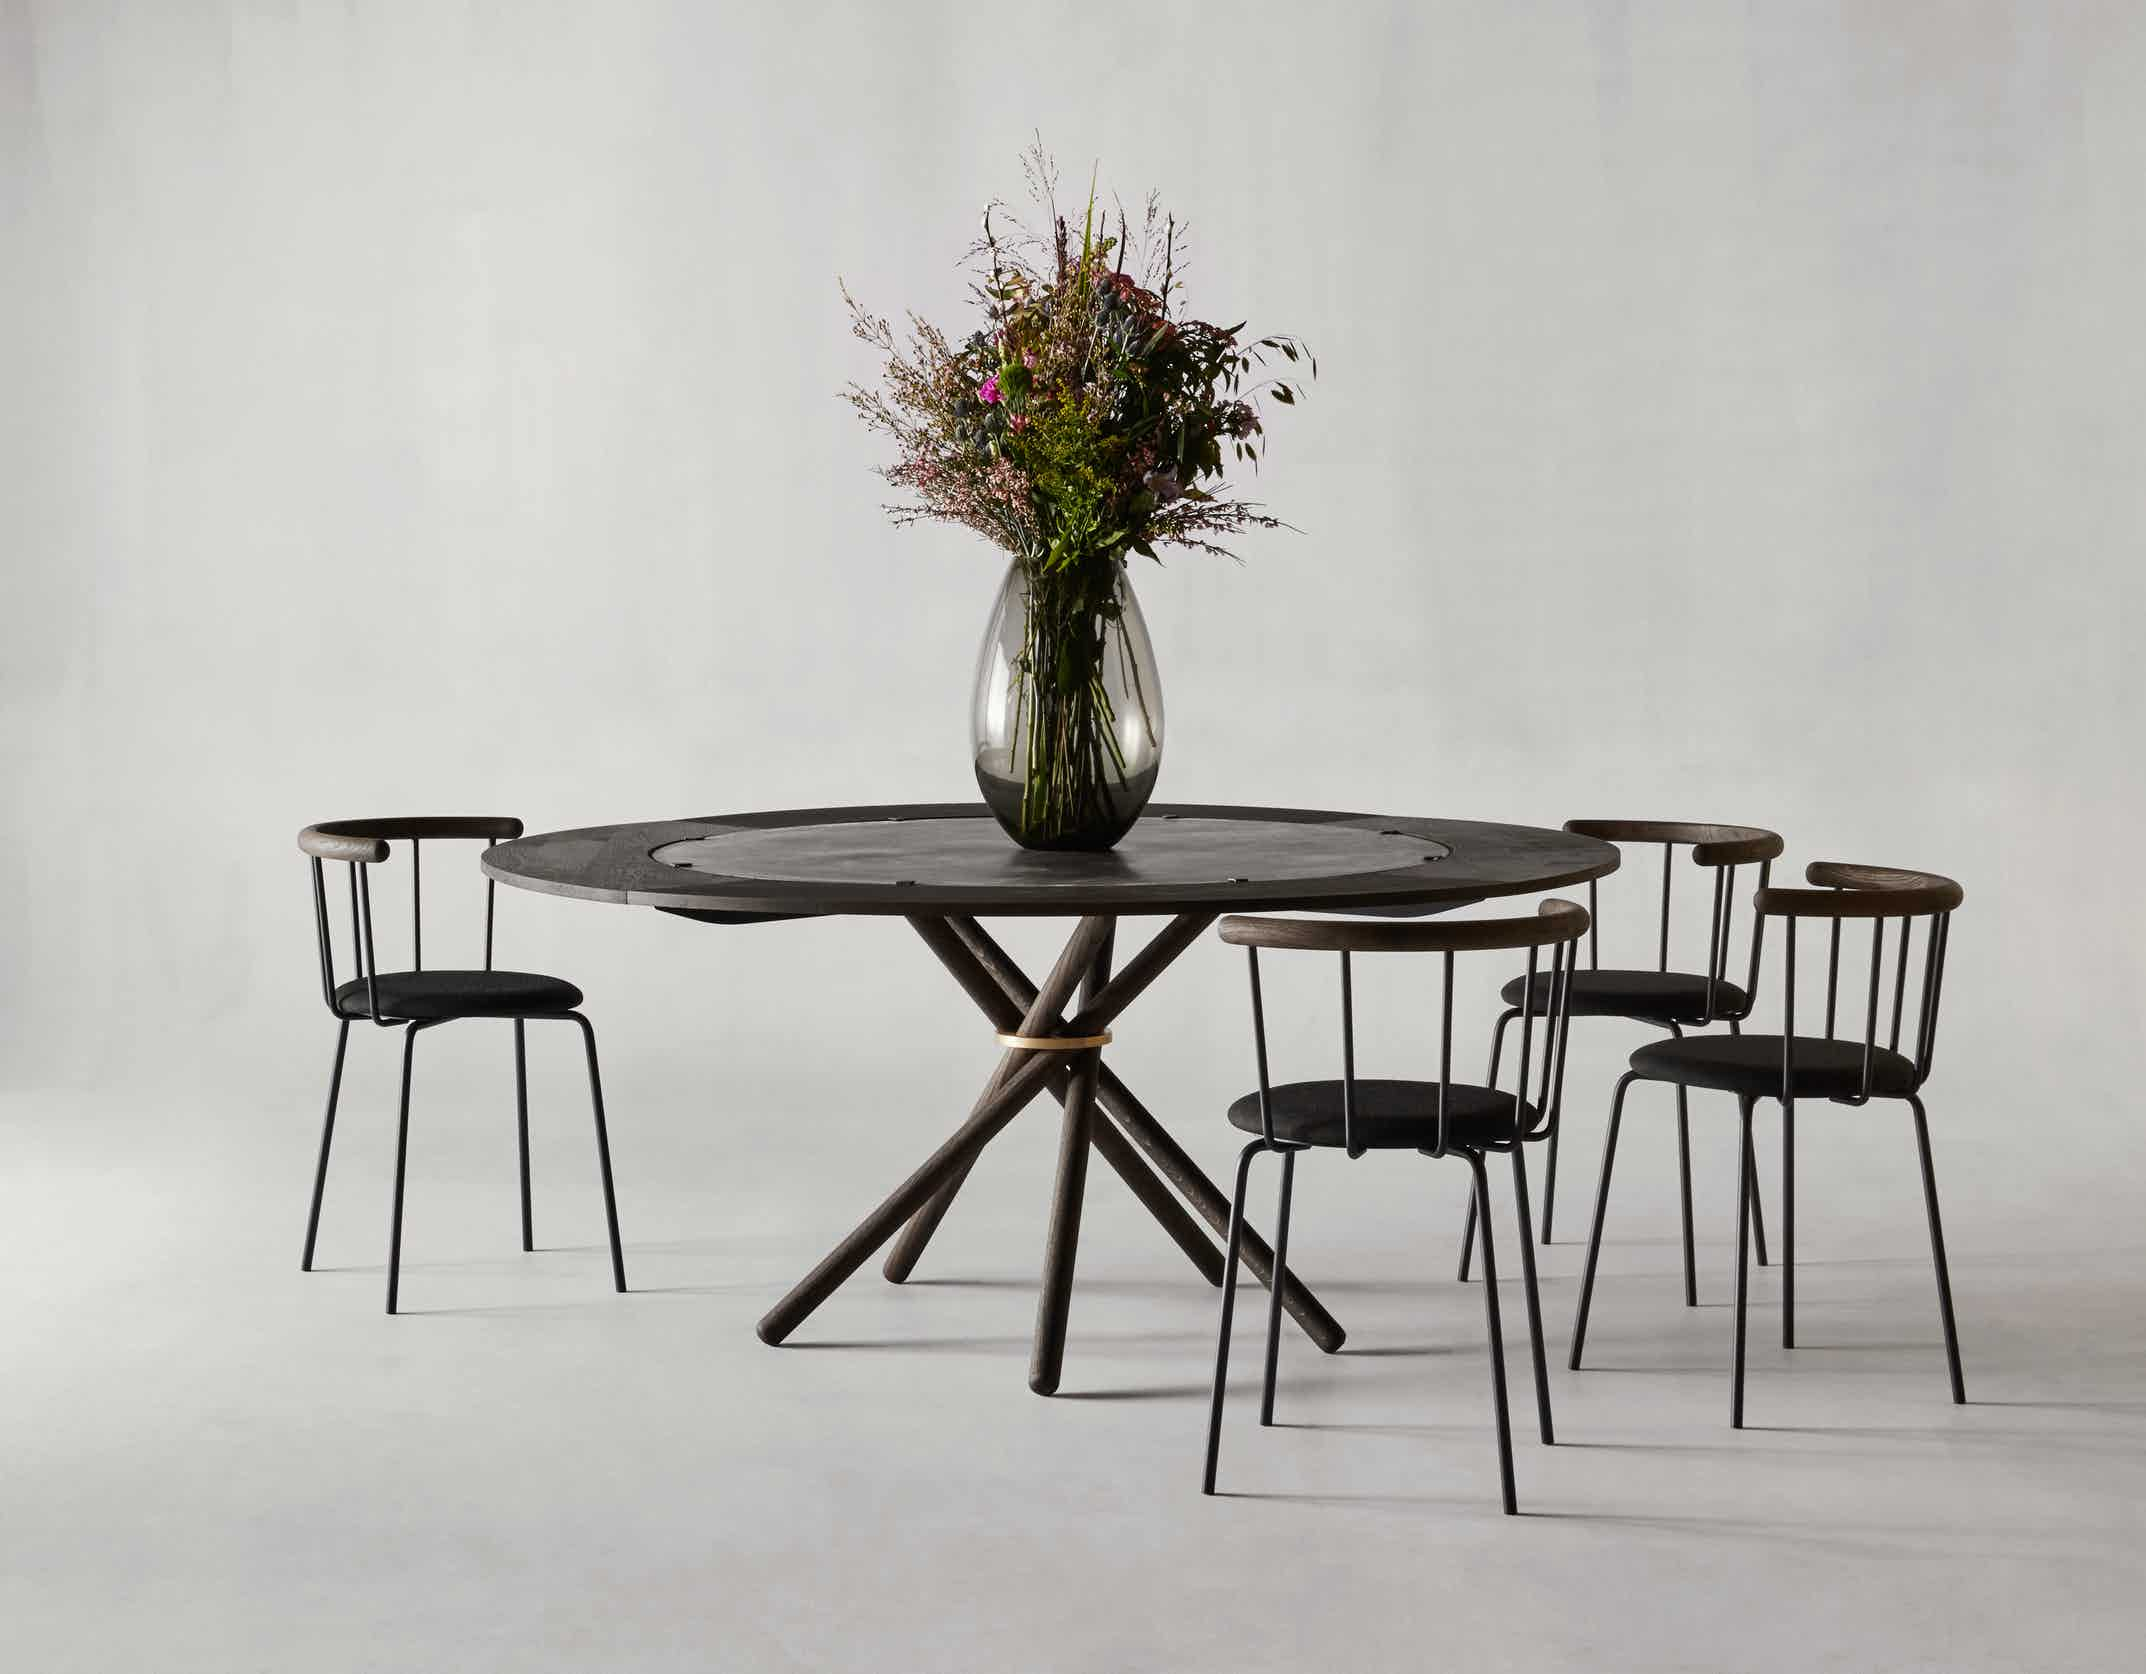 Eberhart furniture hector table black insitu haute living